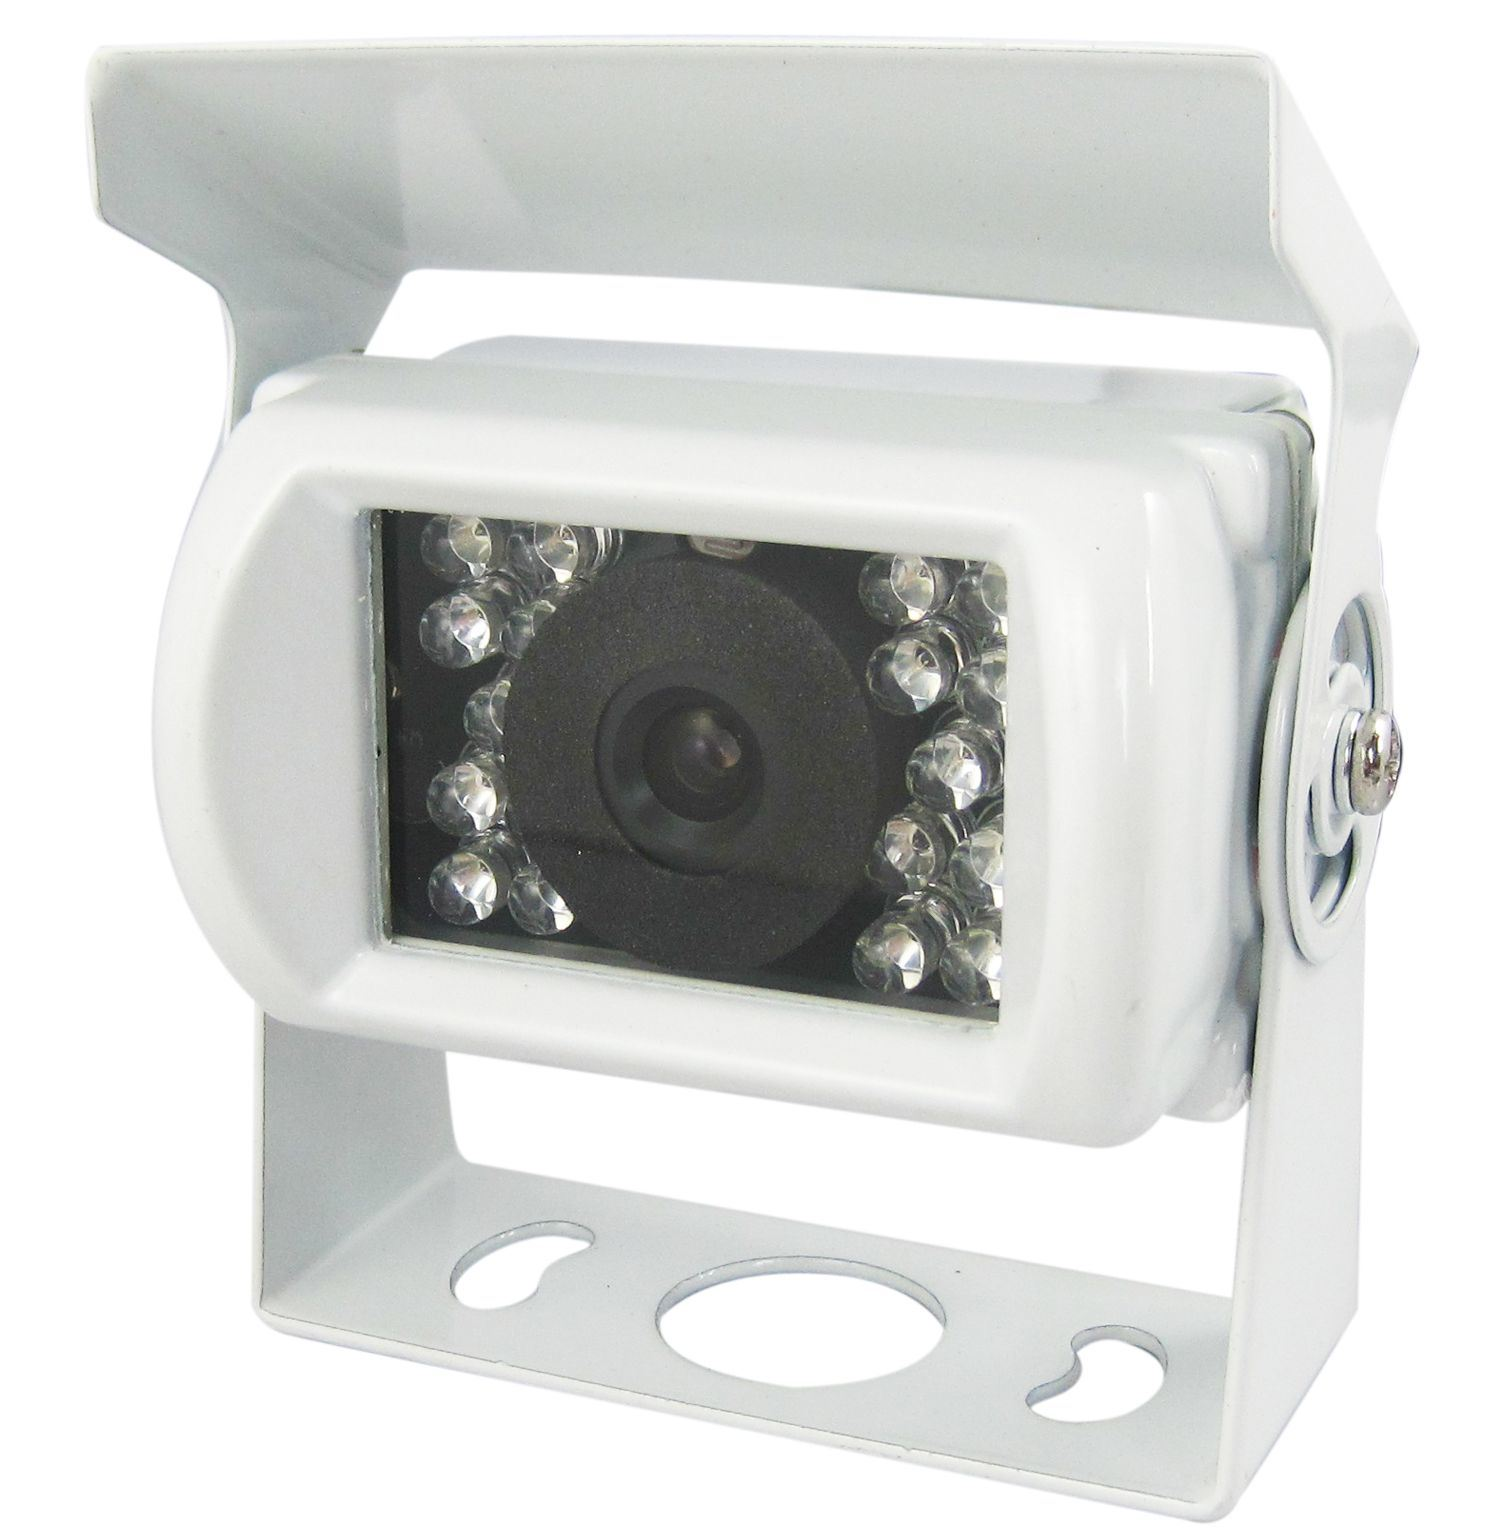 Car Rearview Backup Heavy Duty Waterproof Camera (Ca-9880)